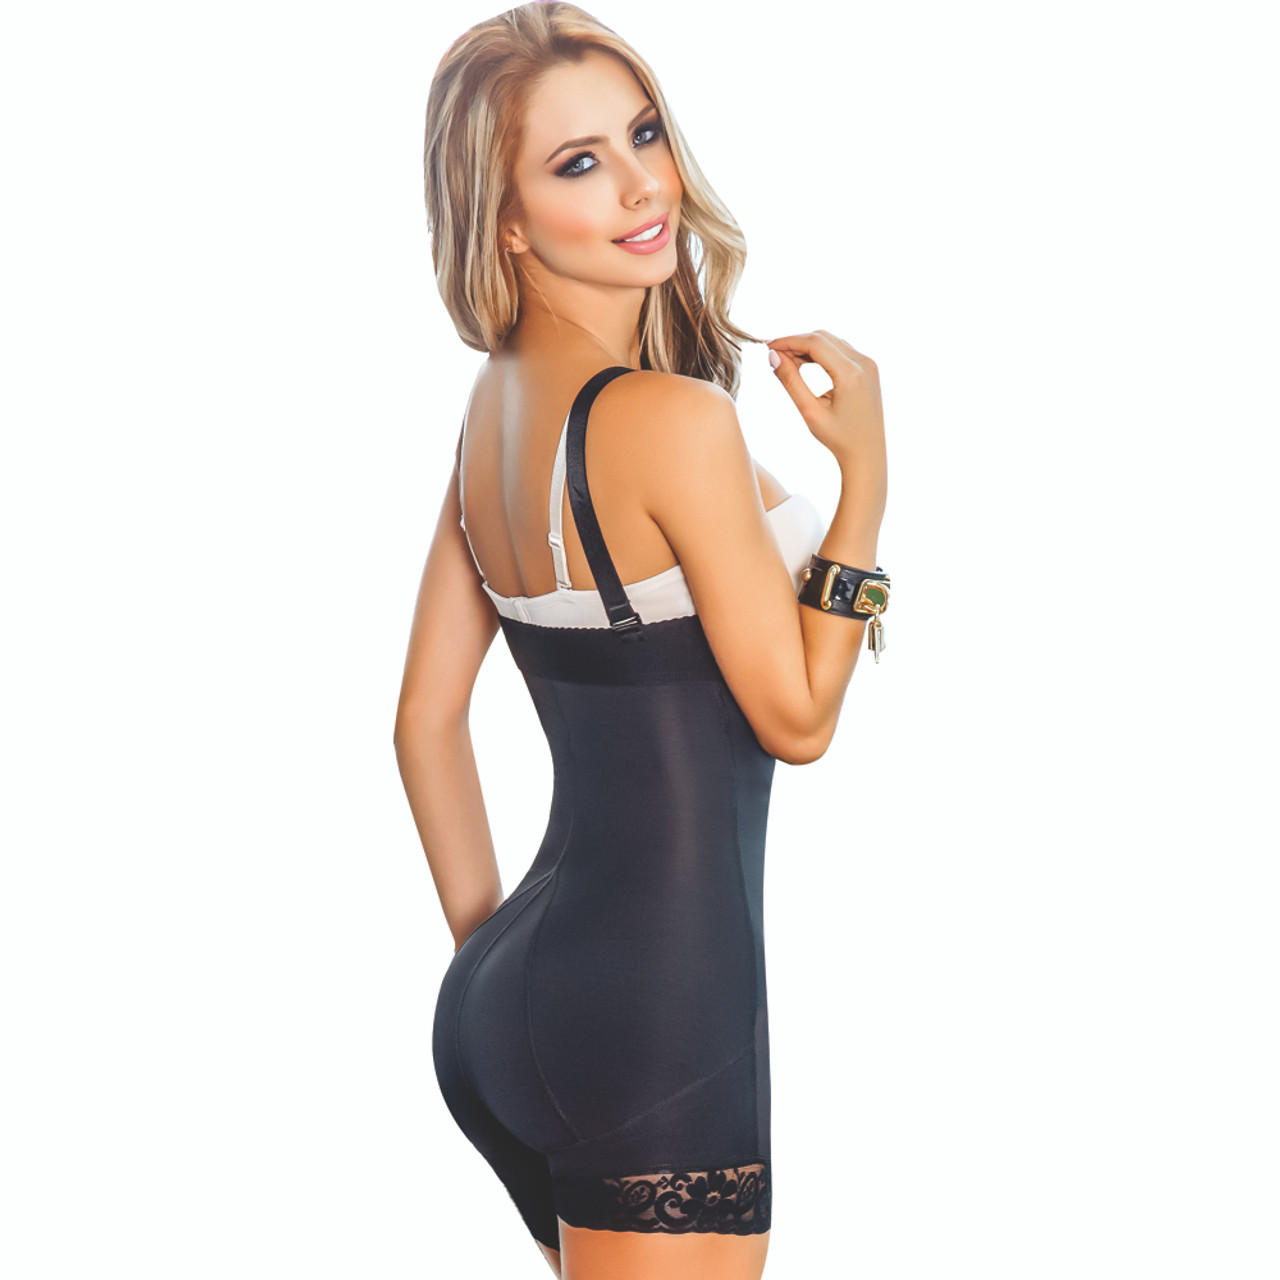 54d2eeffee ... Women s Post-Partum Strapless Butt Lifter Compression Girdle Body Shaper  ...